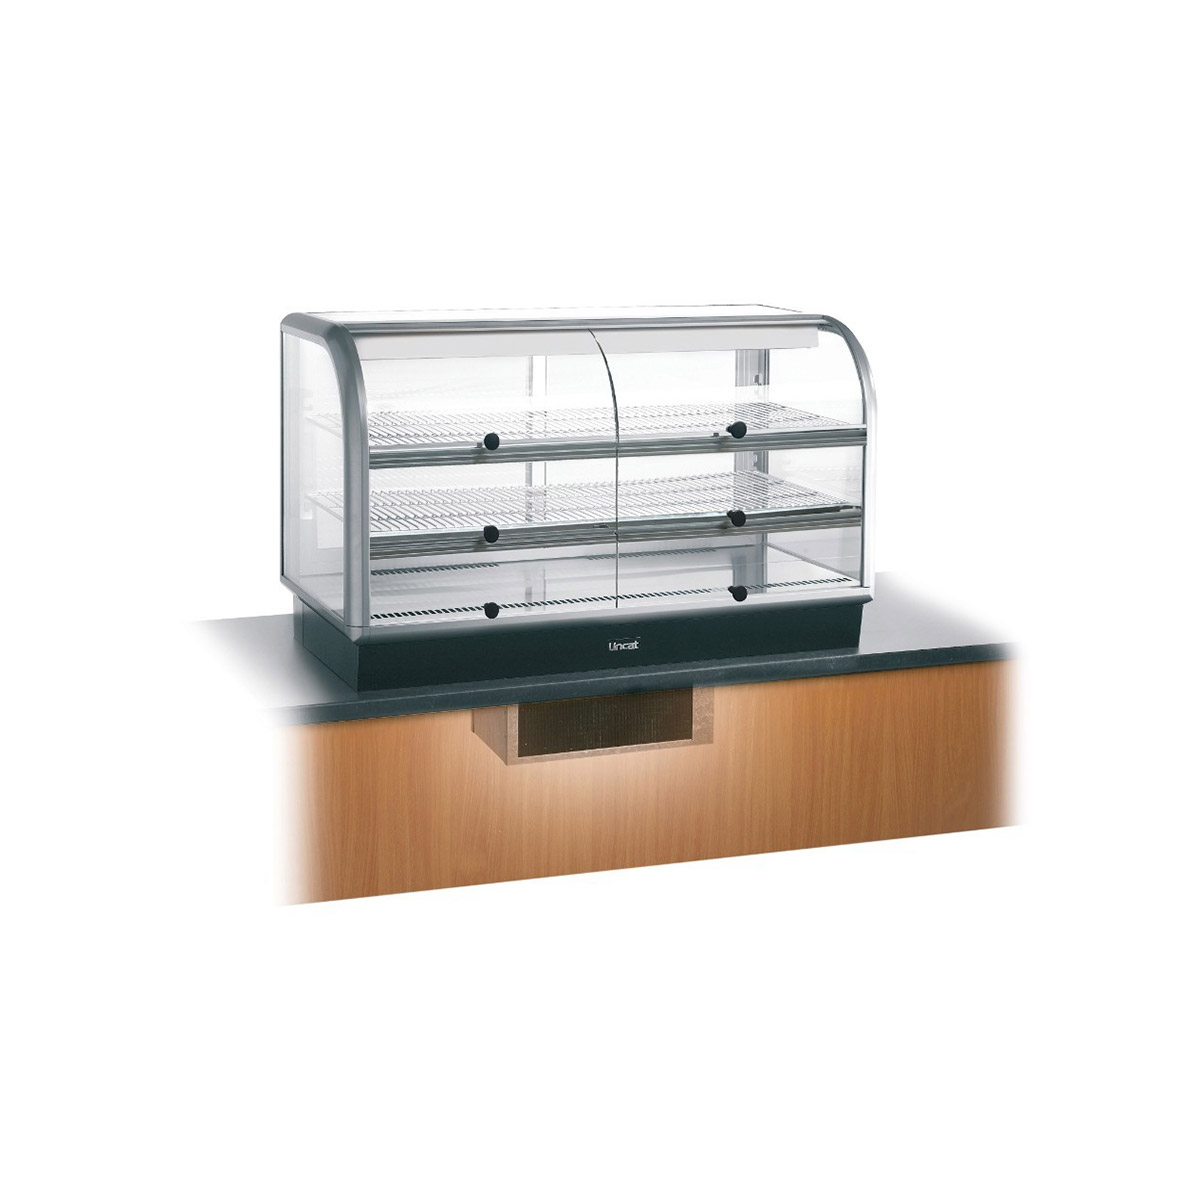 C6R/125SU - Lincat Seal 650 Series Counter-top Curved Front Refrigerated Merchandiser - Self-Service - Under-Counter Power Pack - W 1250 mm - 0.7 kW